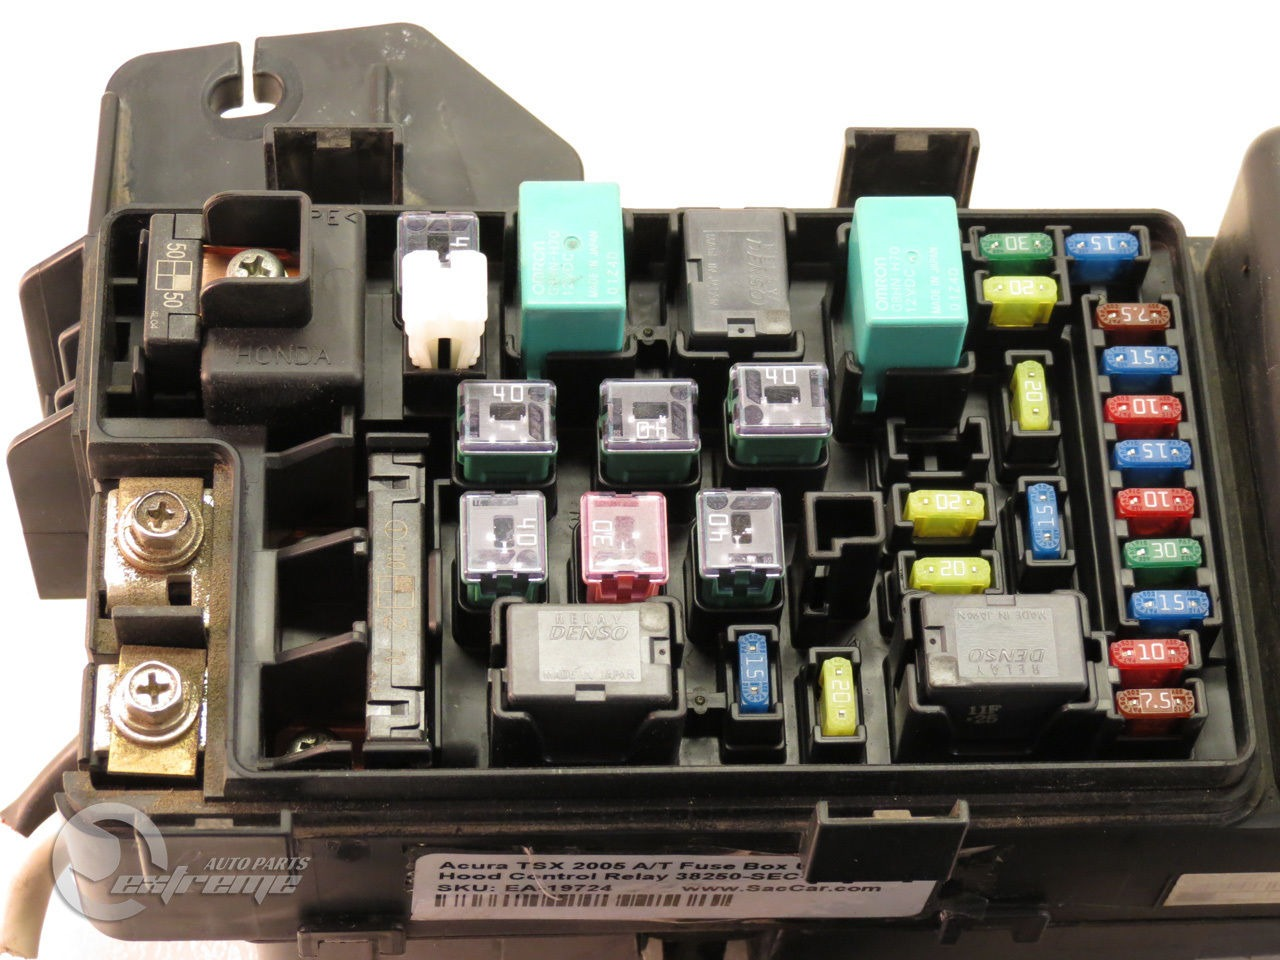 2005 Acura Tsx Fuse Box Wiring Diagrams 2004 Diagram A T Under Hood Control Relay 38250 Rsx